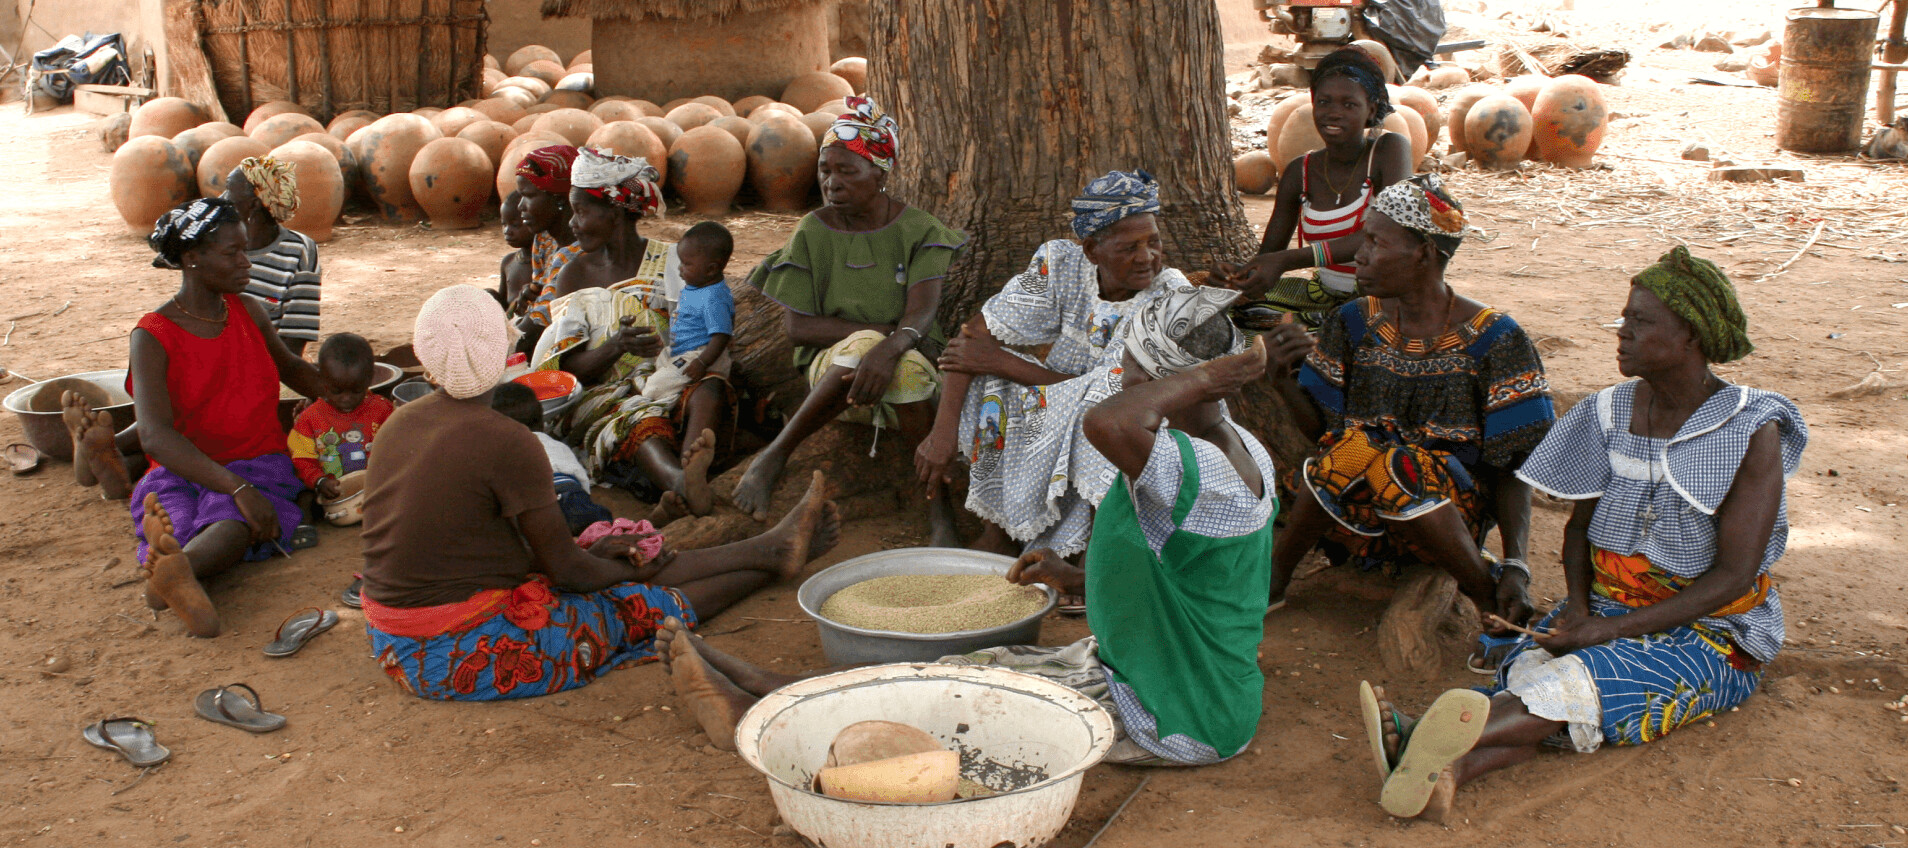 Women with children sit under a tree in the village in front of them are bowls of dough and flatbread.